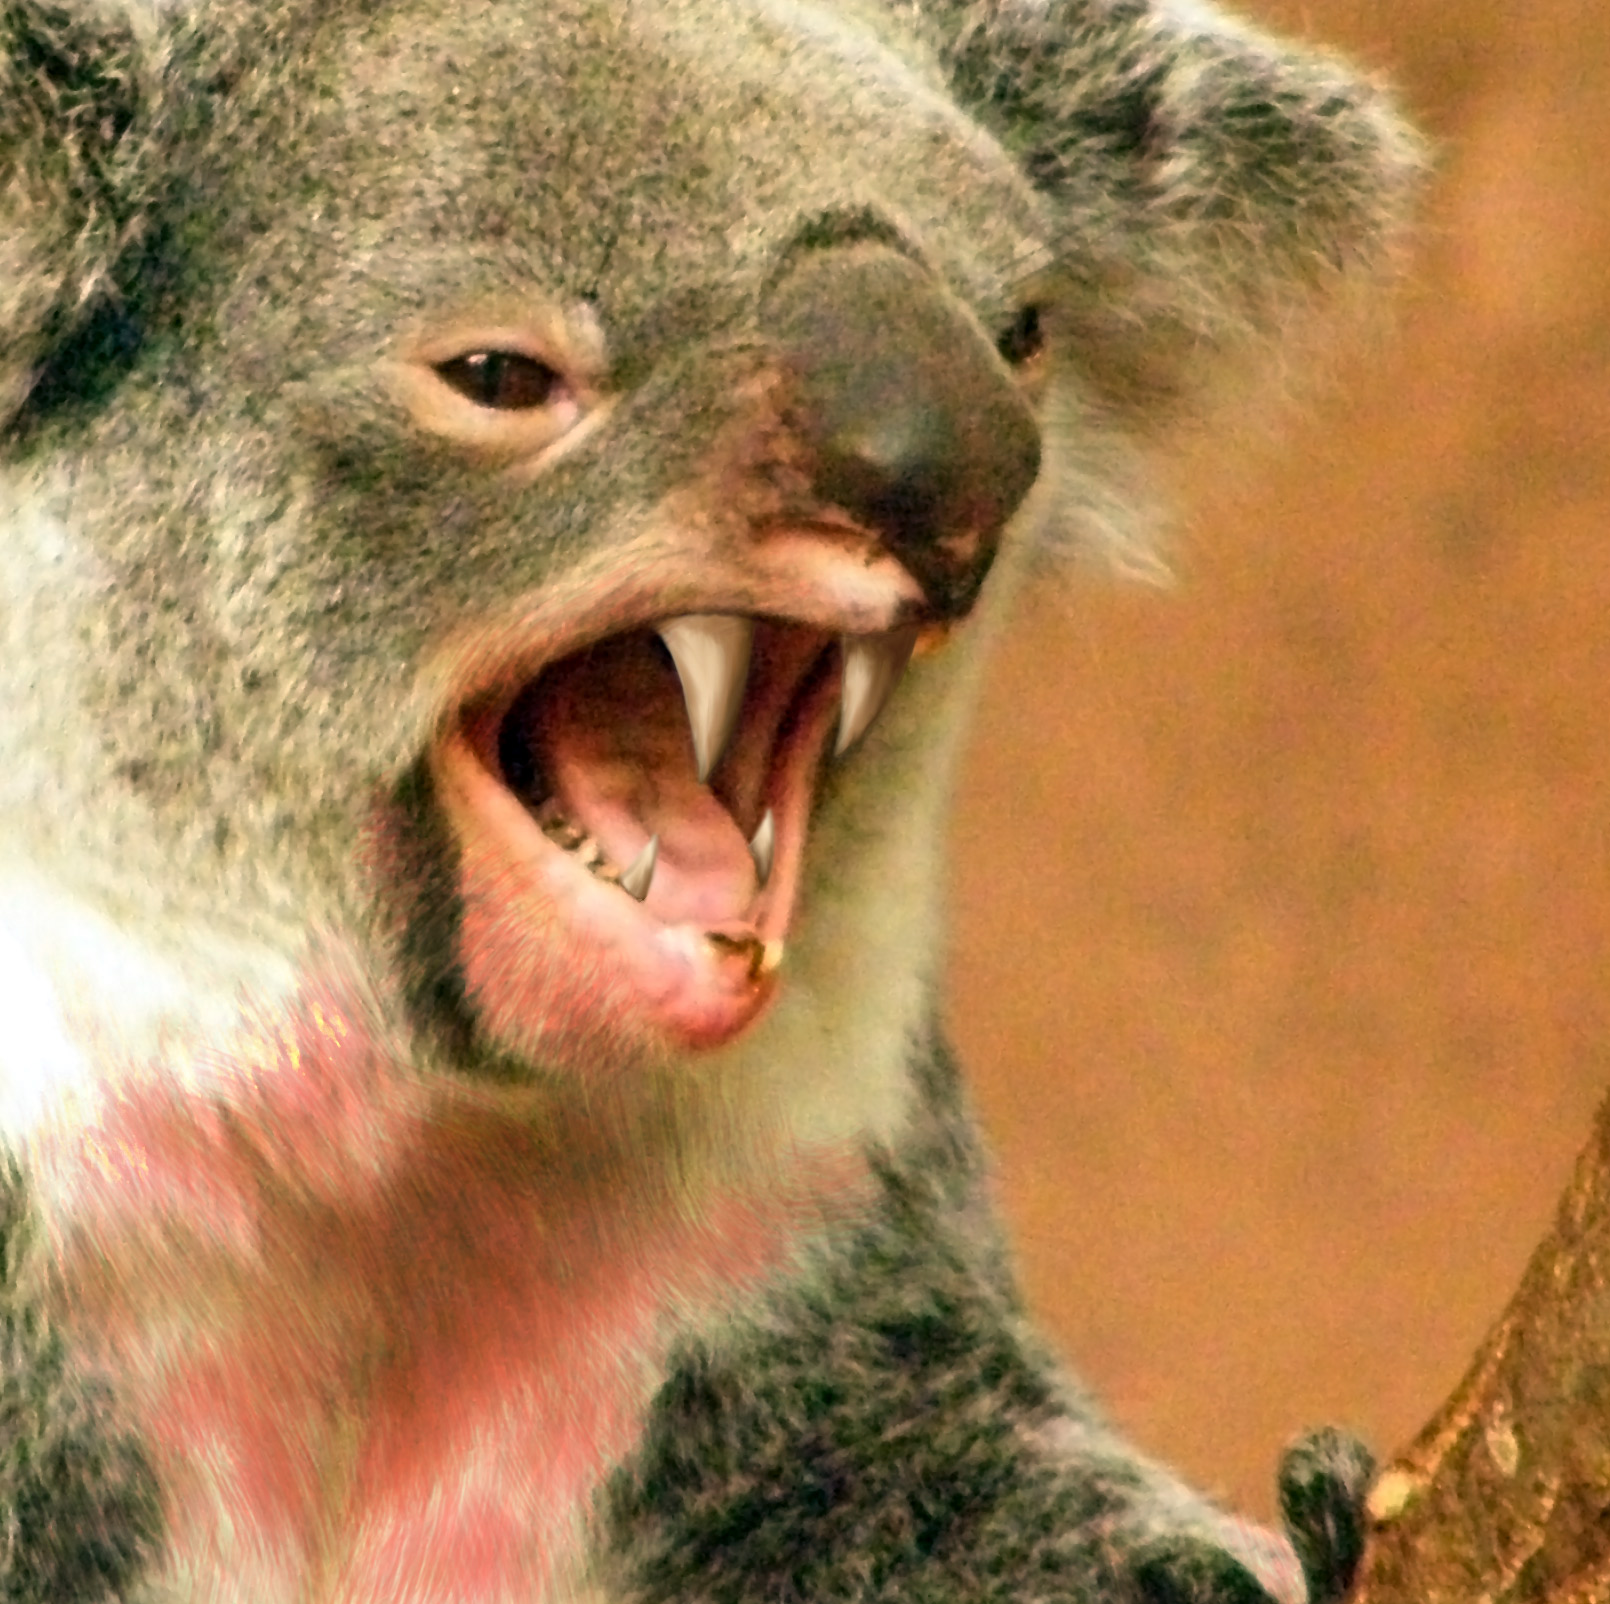 Drop bear - Wikipedia